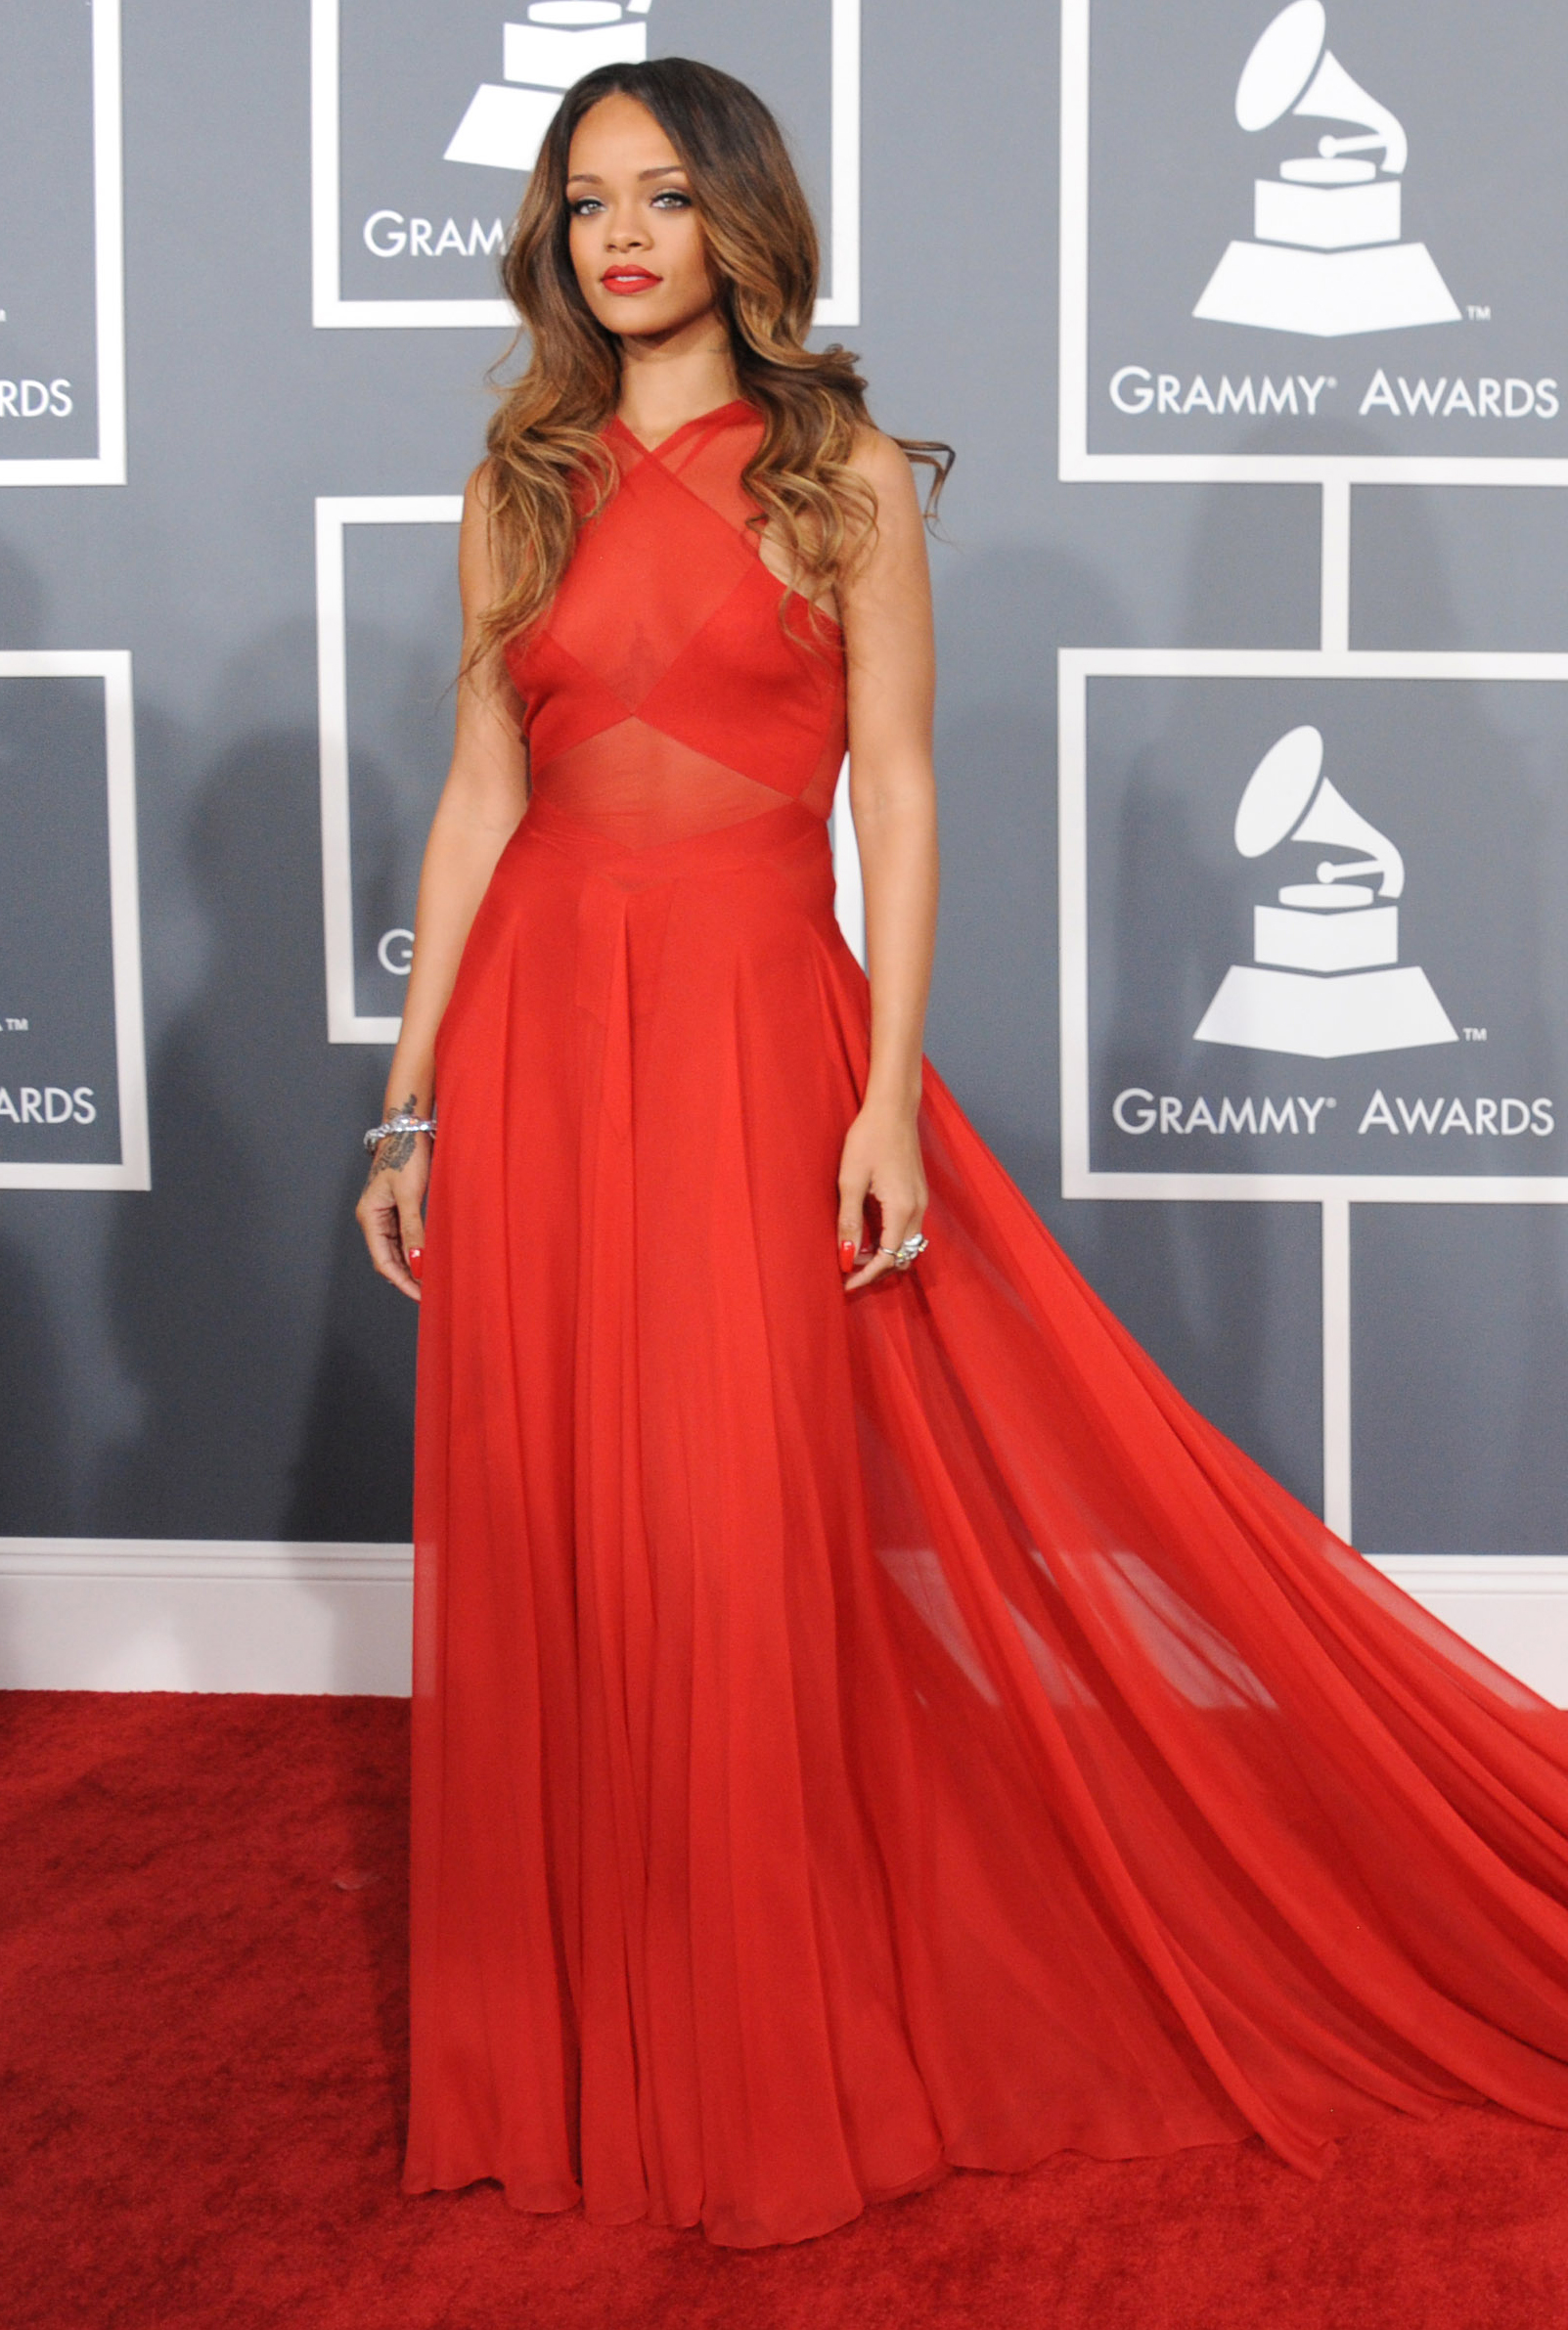 55th Annual Grammy Awards - Arrivals - Los Angeles